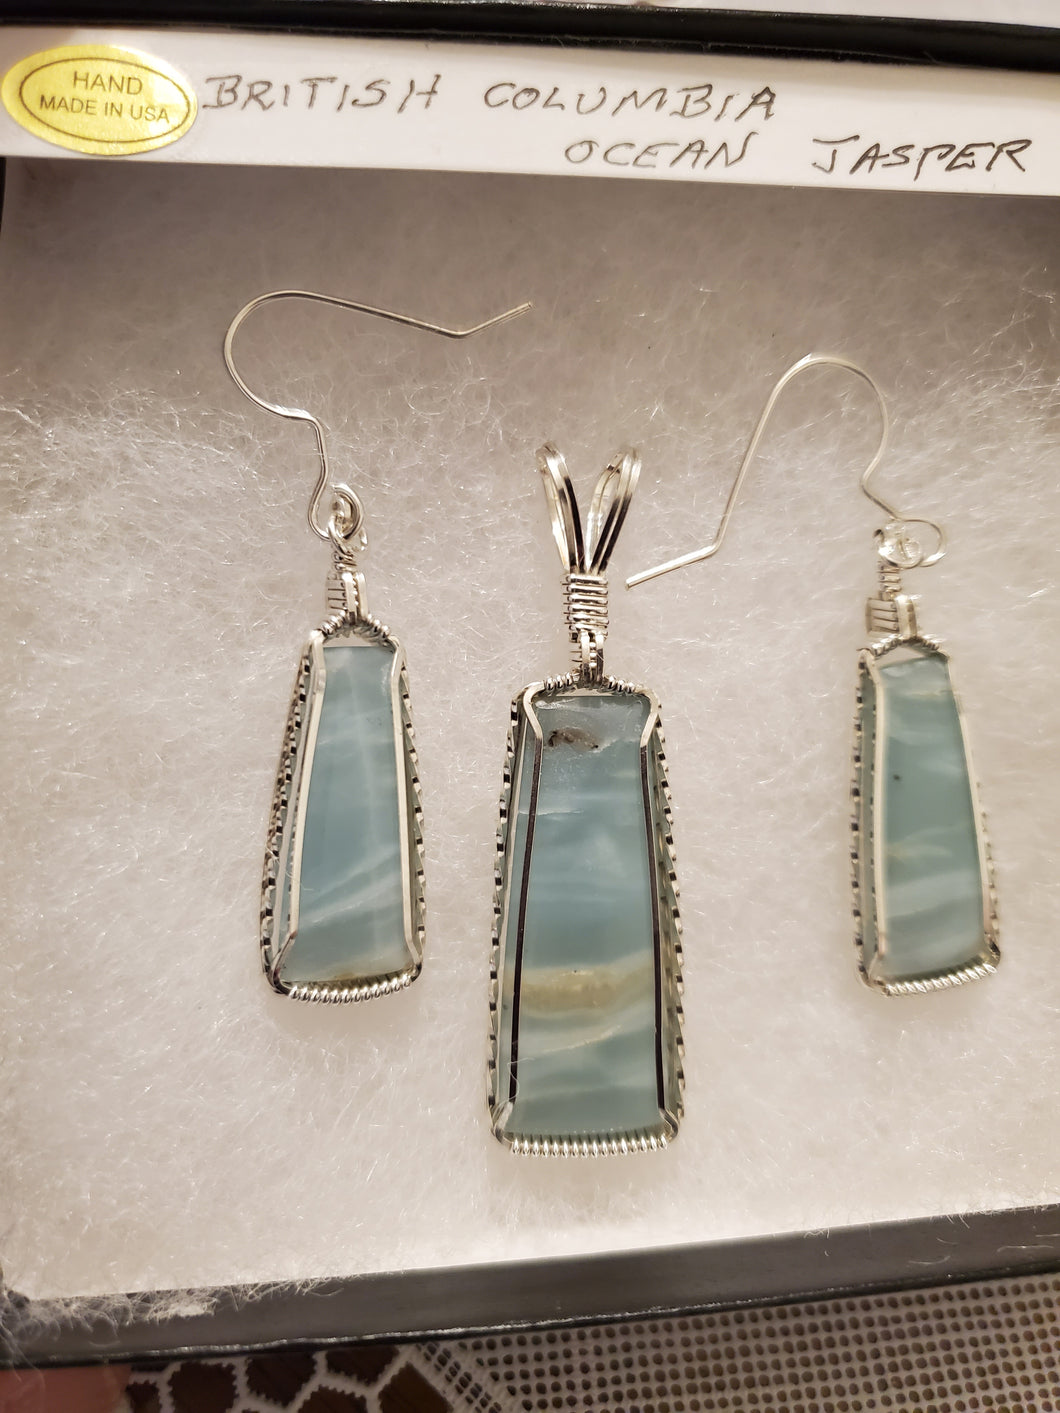 Custom Wire Wrapped British Columbia Ocean Jasper Set Earrings Necklace/Pendant Sterling Silver